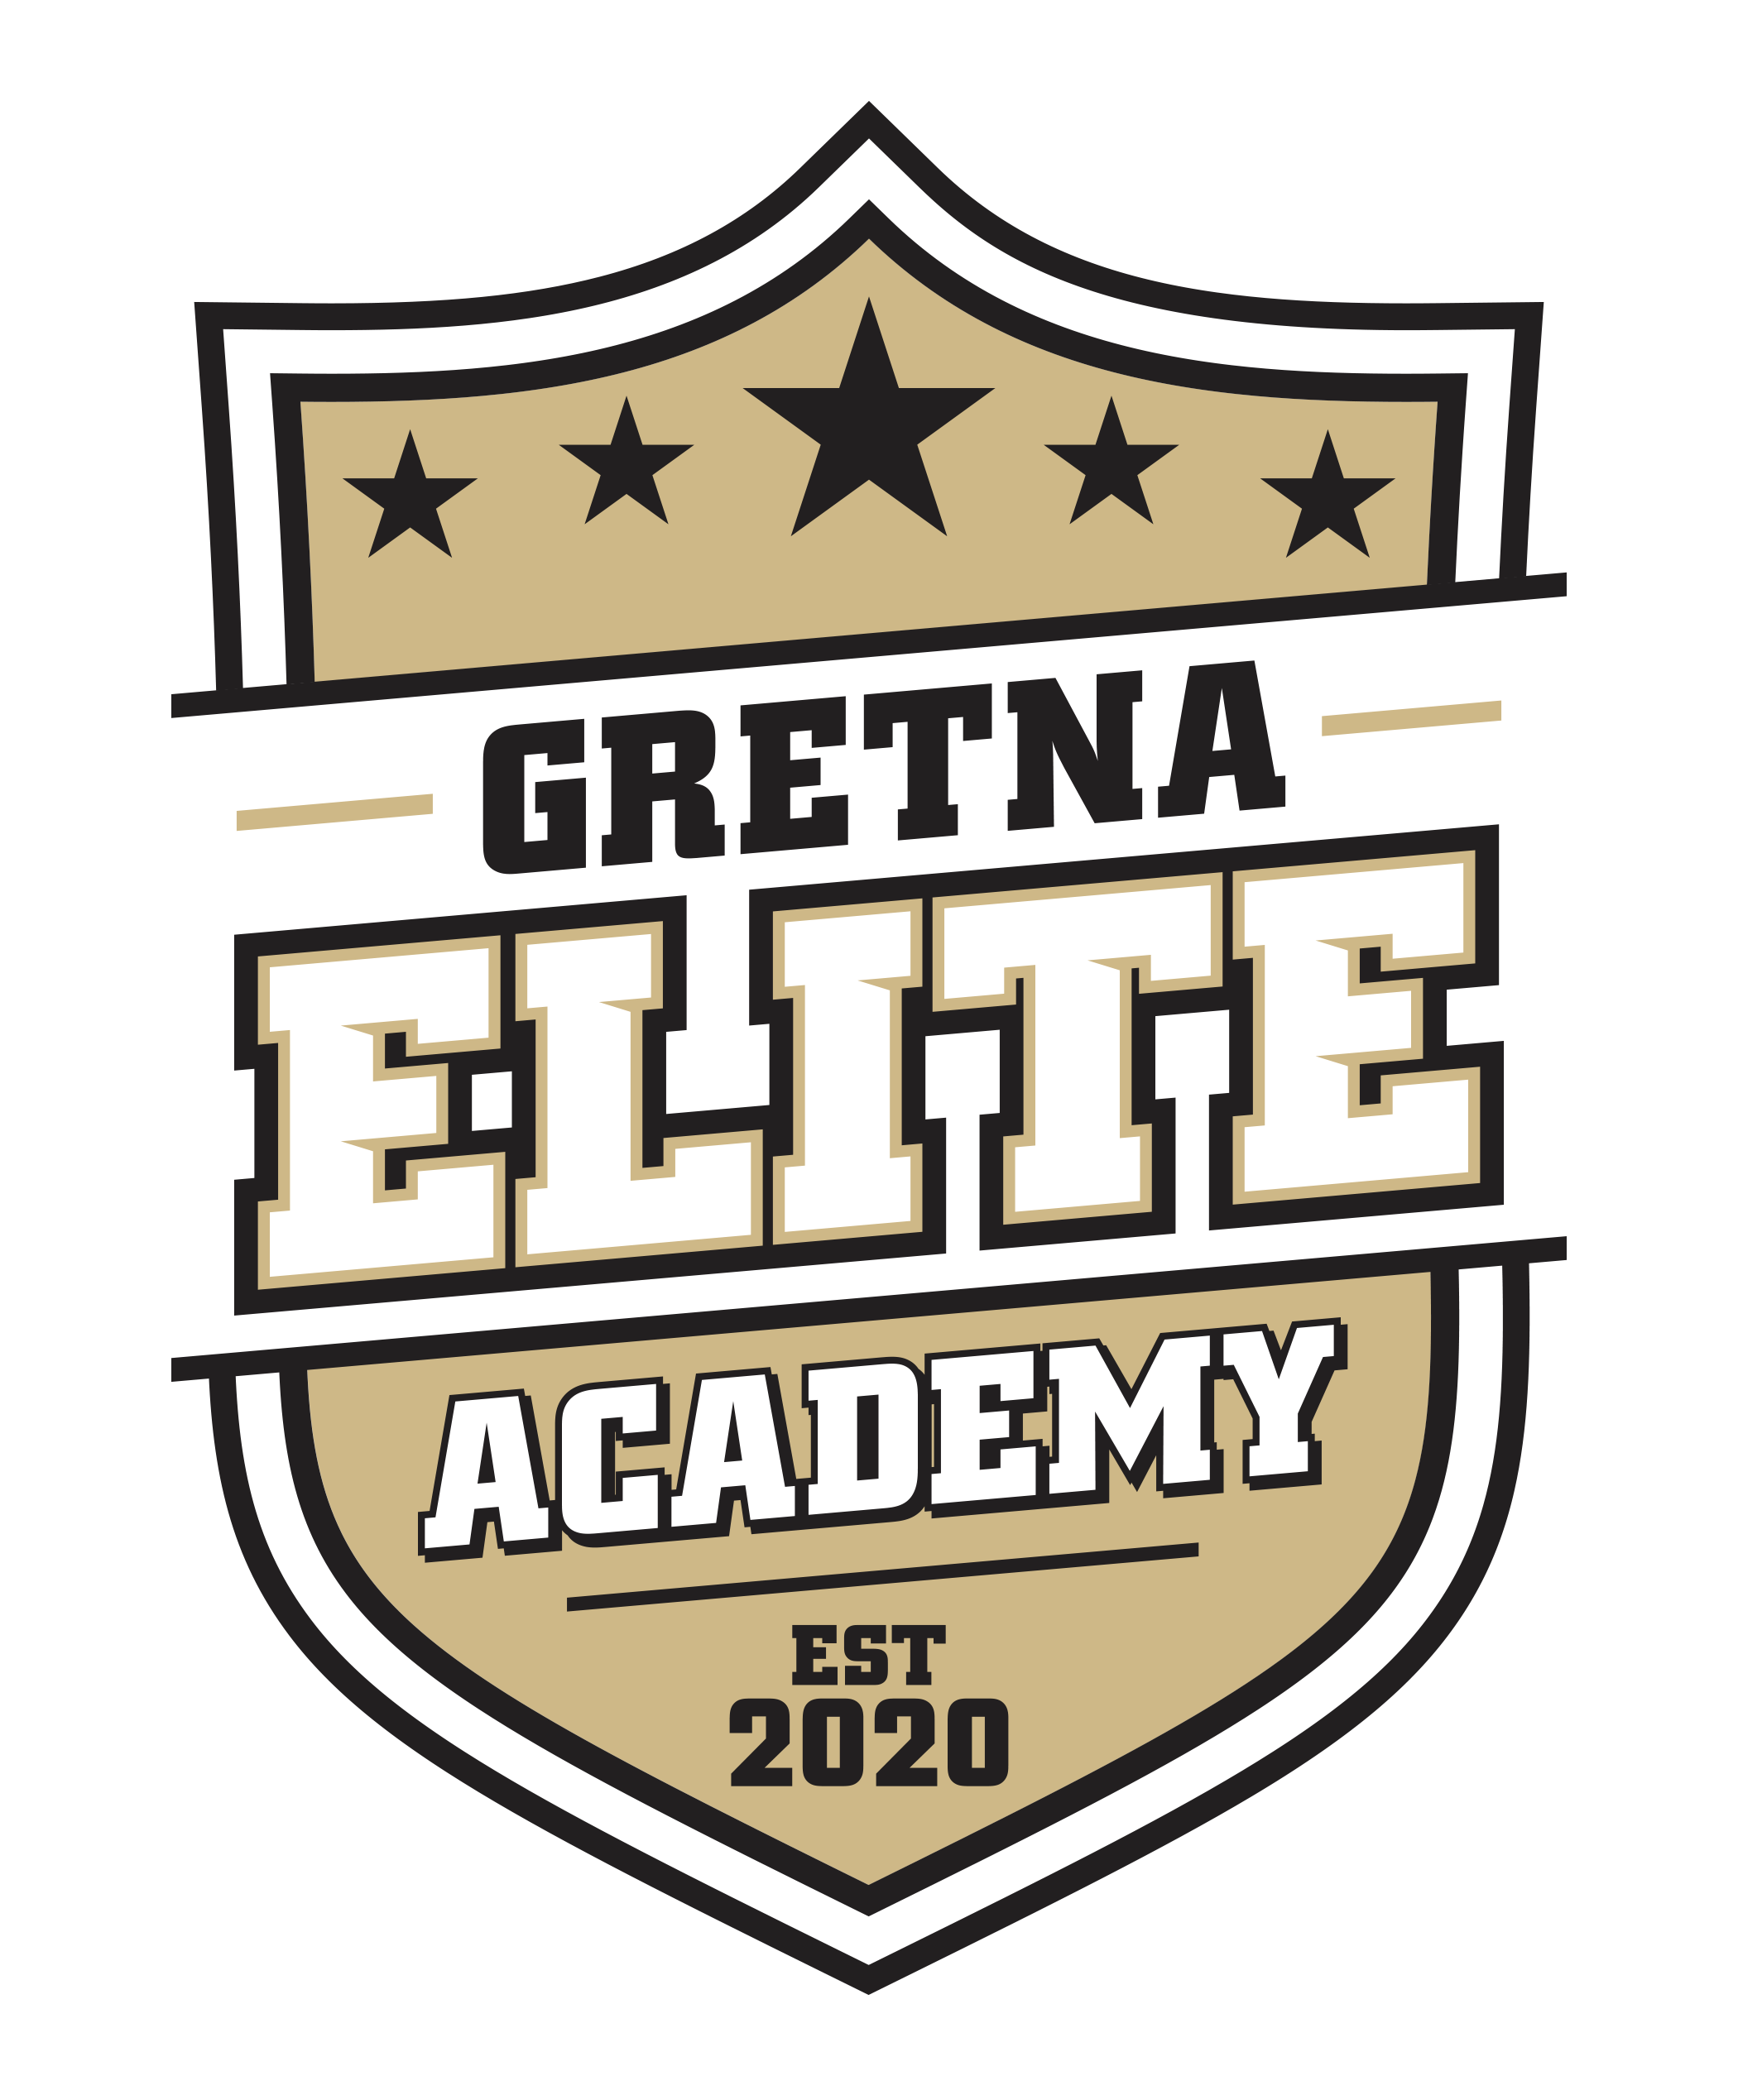 Gretna-Elite-Academy-Color-RGB-white-solid